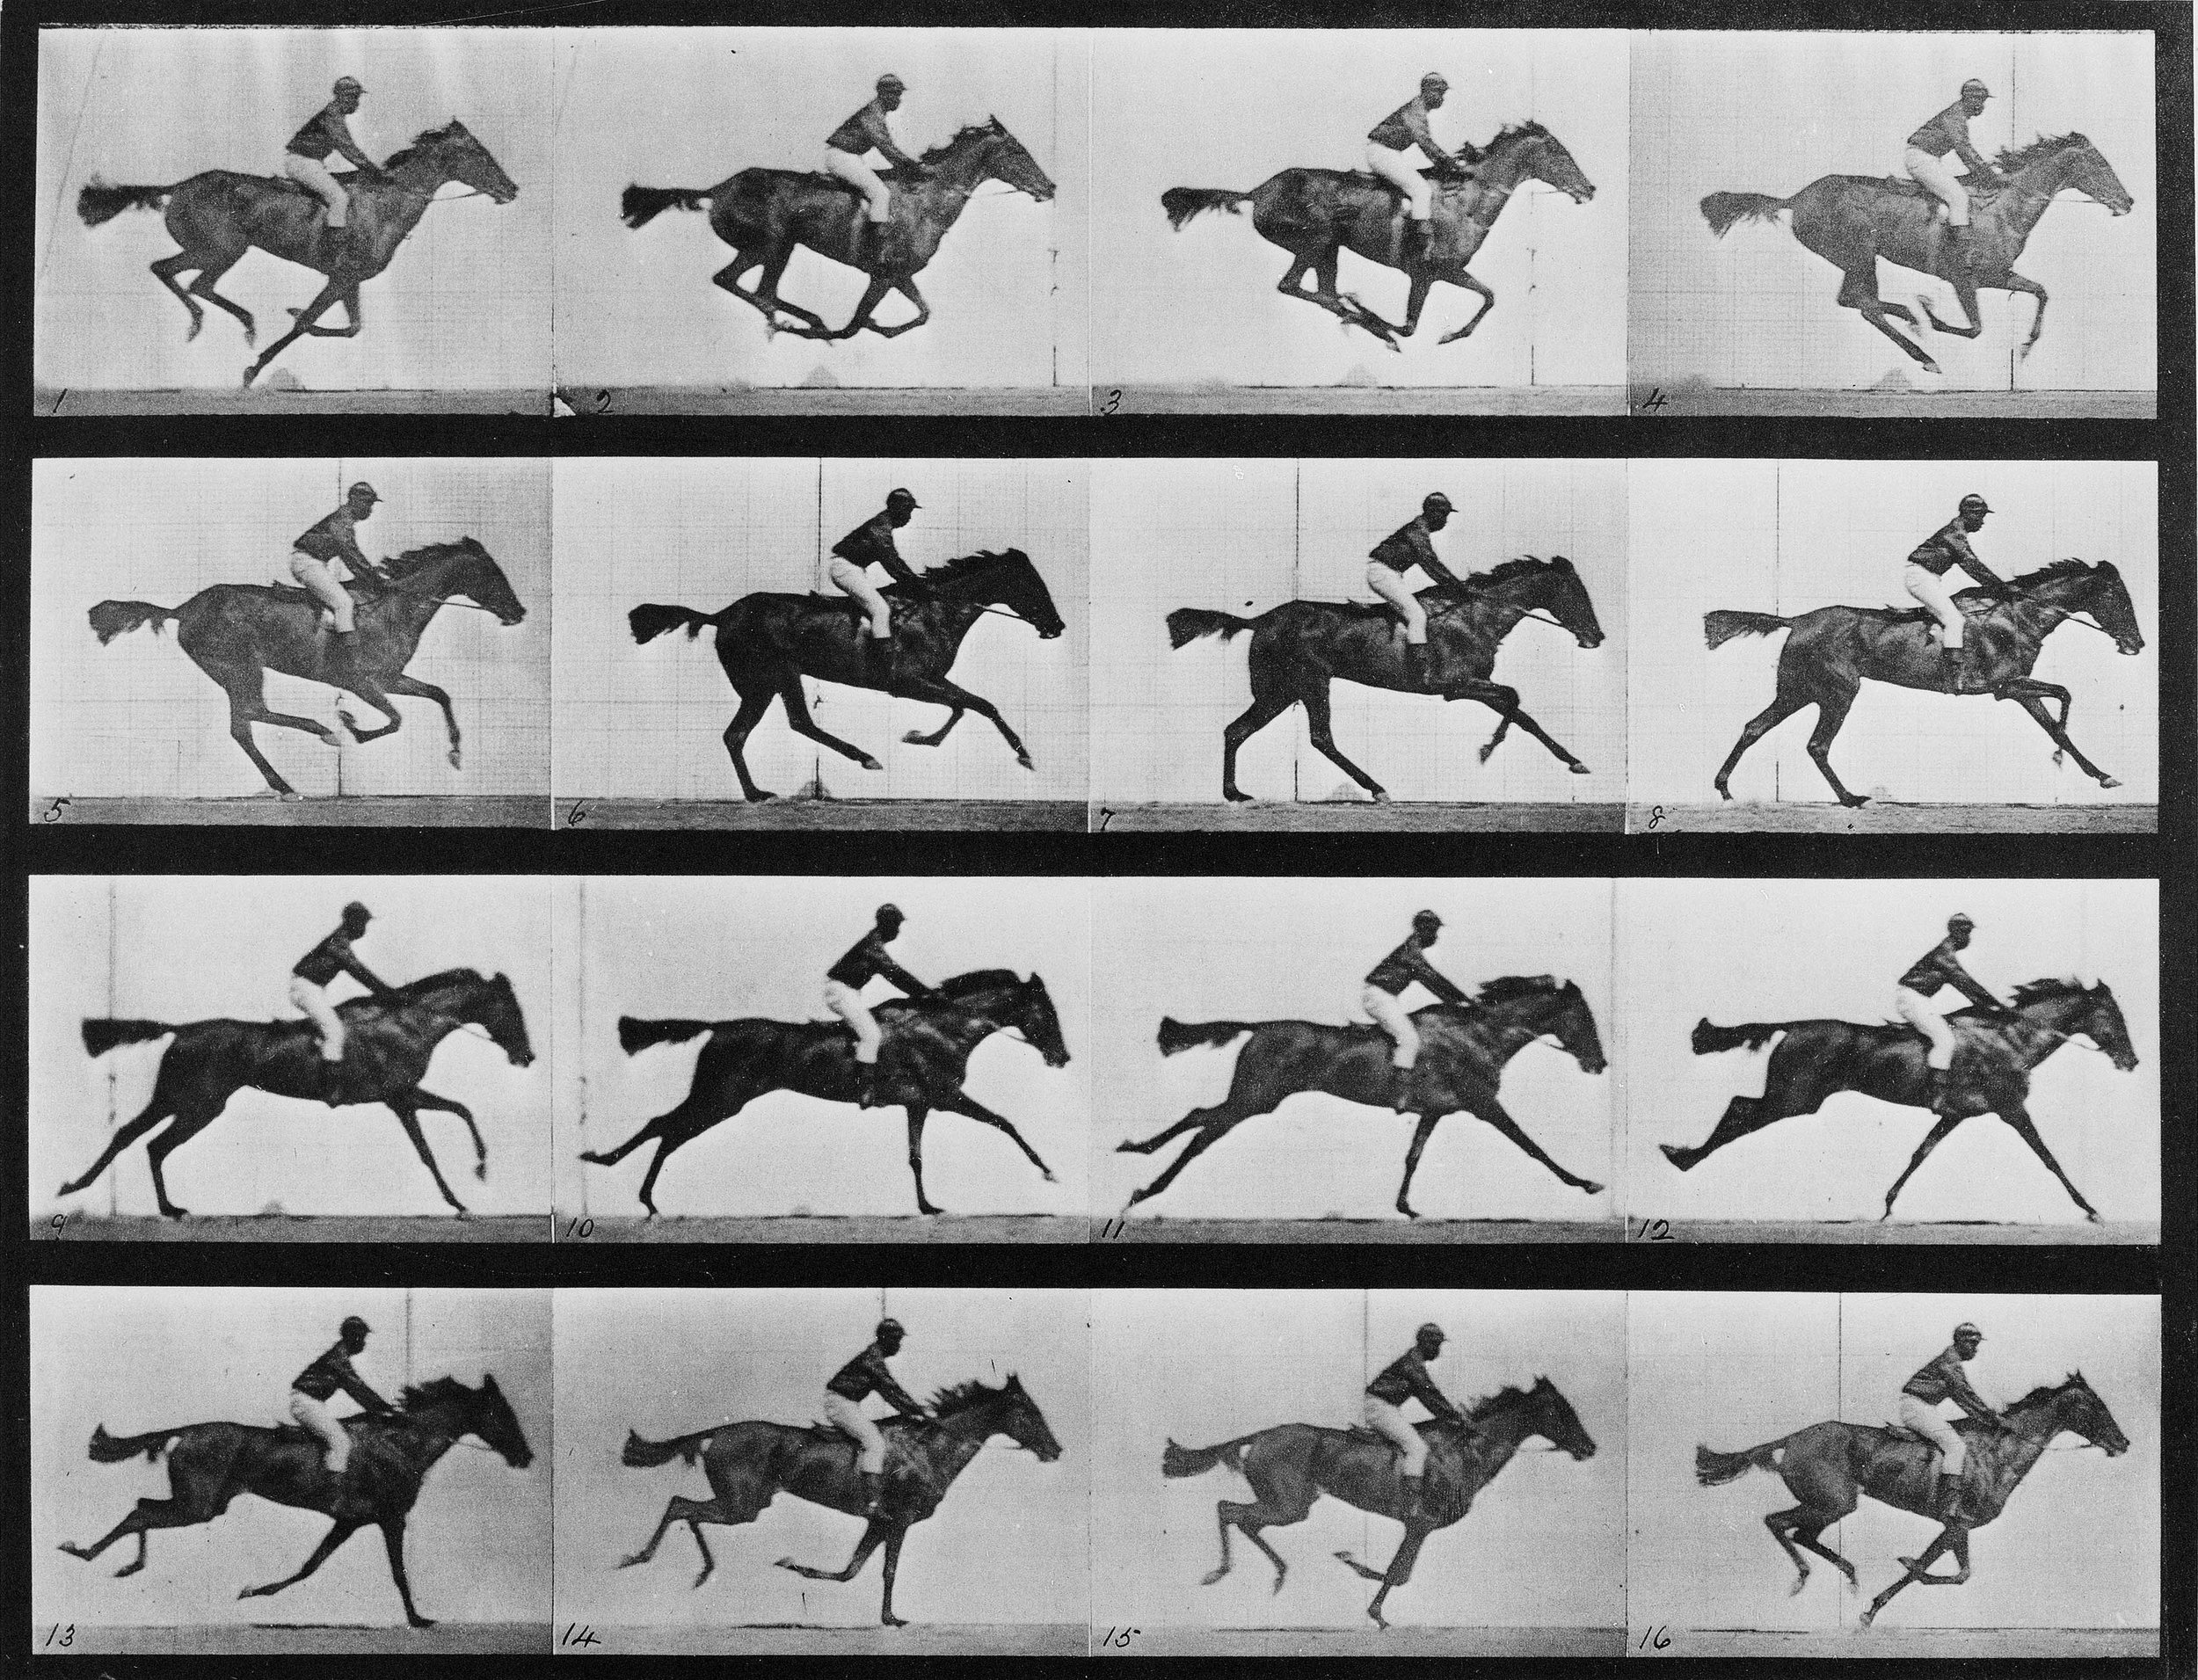 The Horse in Motion, Edweard Muybridge 1878, Public Domain